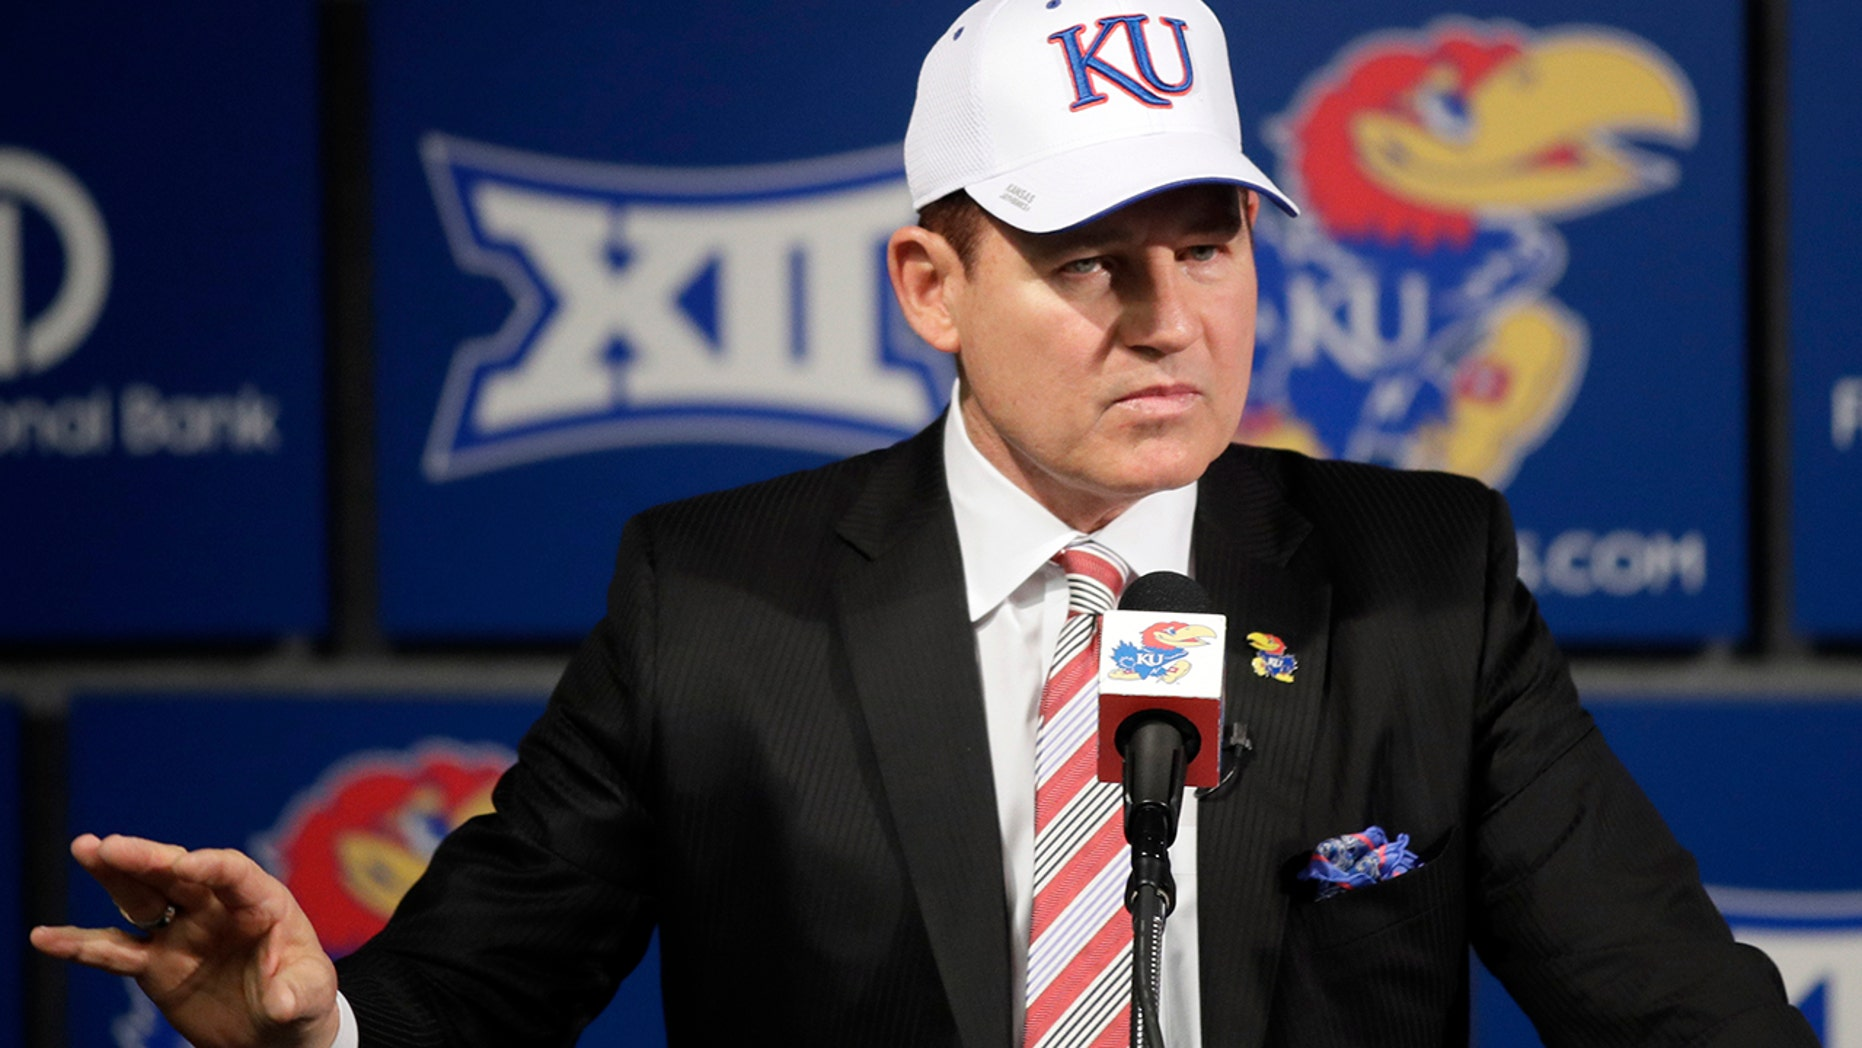 The University of Kansas' new football coach, Les Miles, makes a statement during a news conference in Lawrence, Kan., Sunday, Nov. 18, 2018.